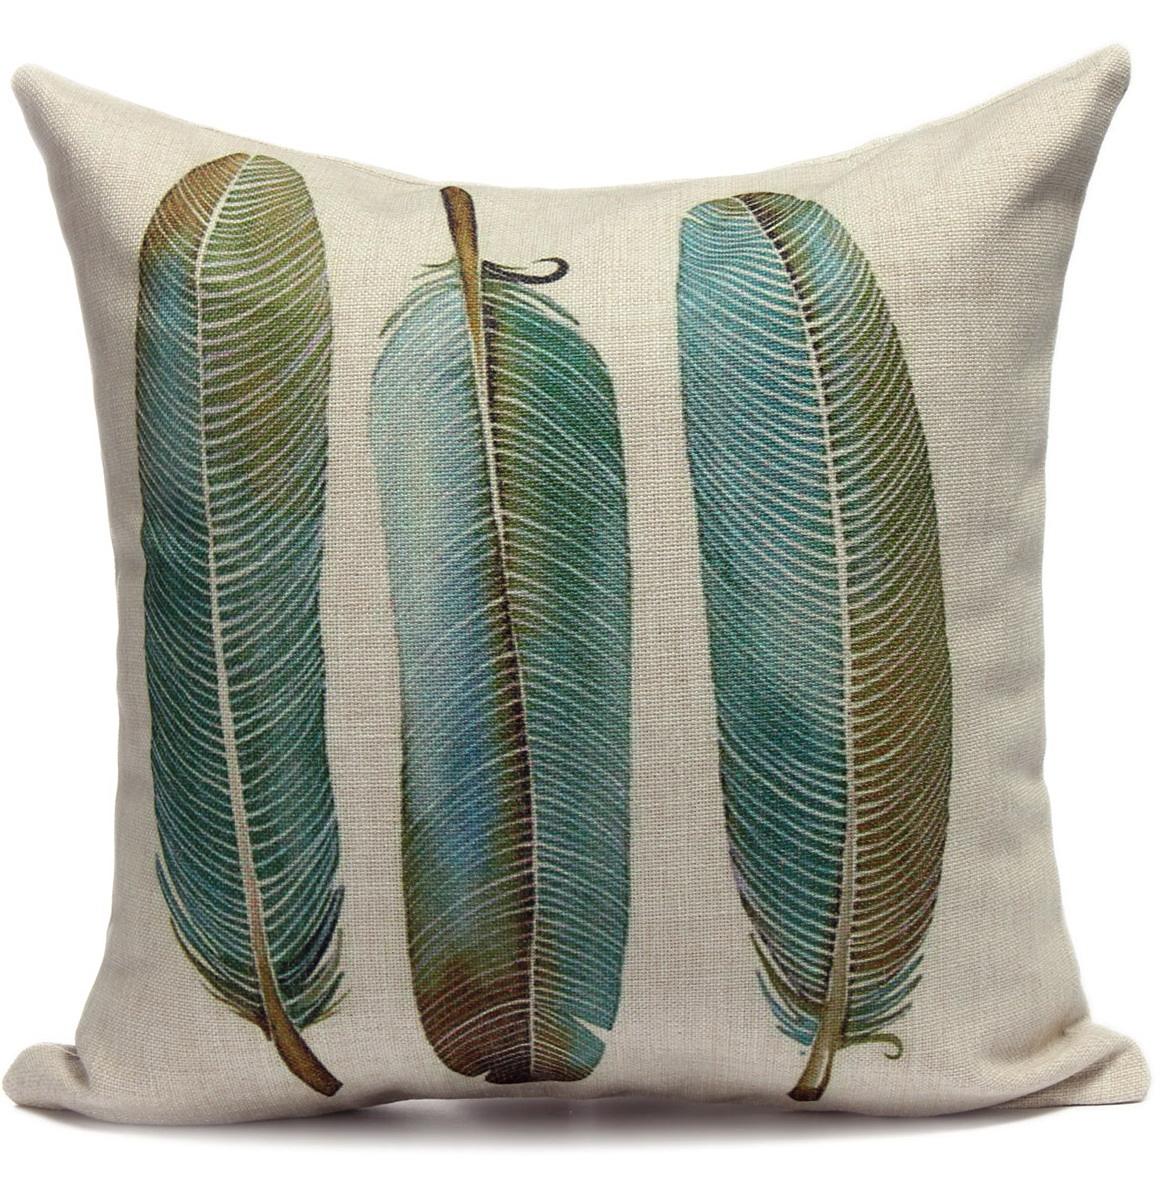 New Cushion Covers For Sofa